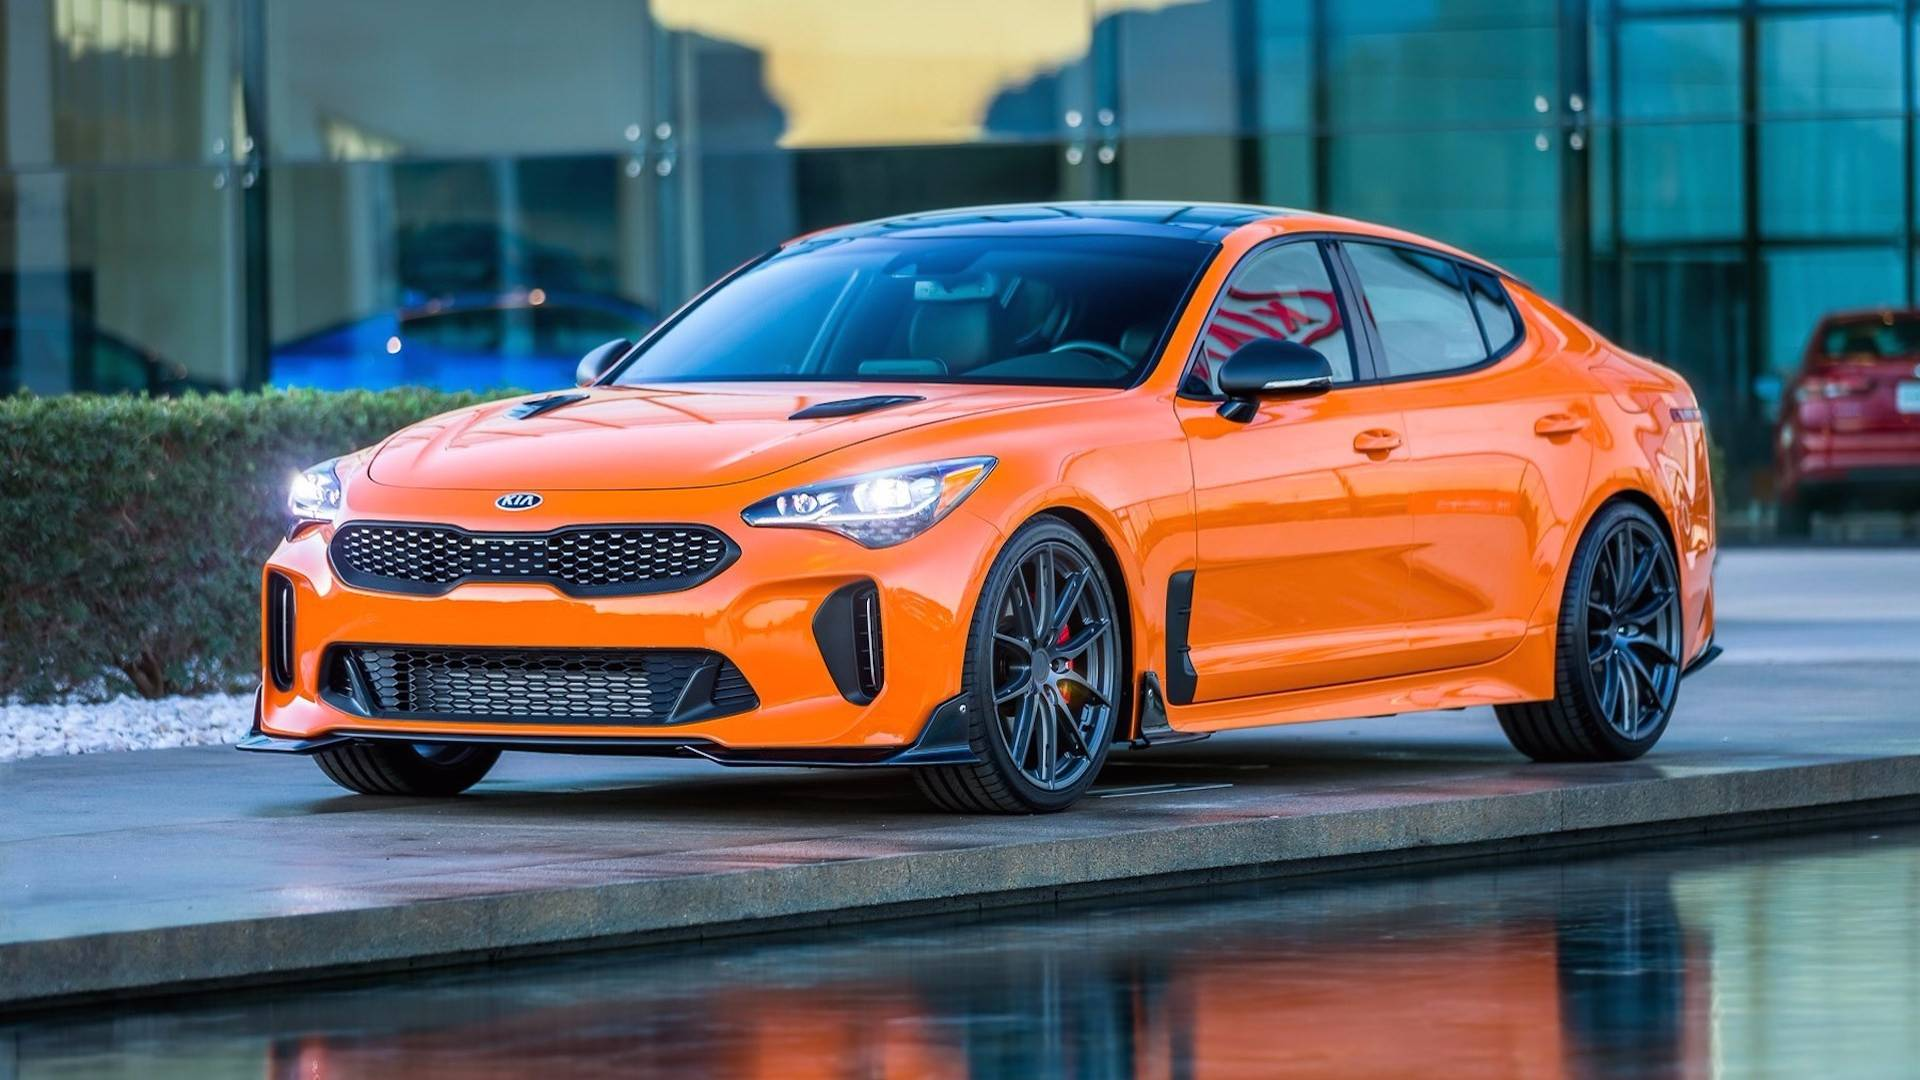 kia stinger gt and cadenza tuning projects debut at sema with wcc 39 s help autoevolution. Black Bedroom Furniture Sets. Home Design Ideas